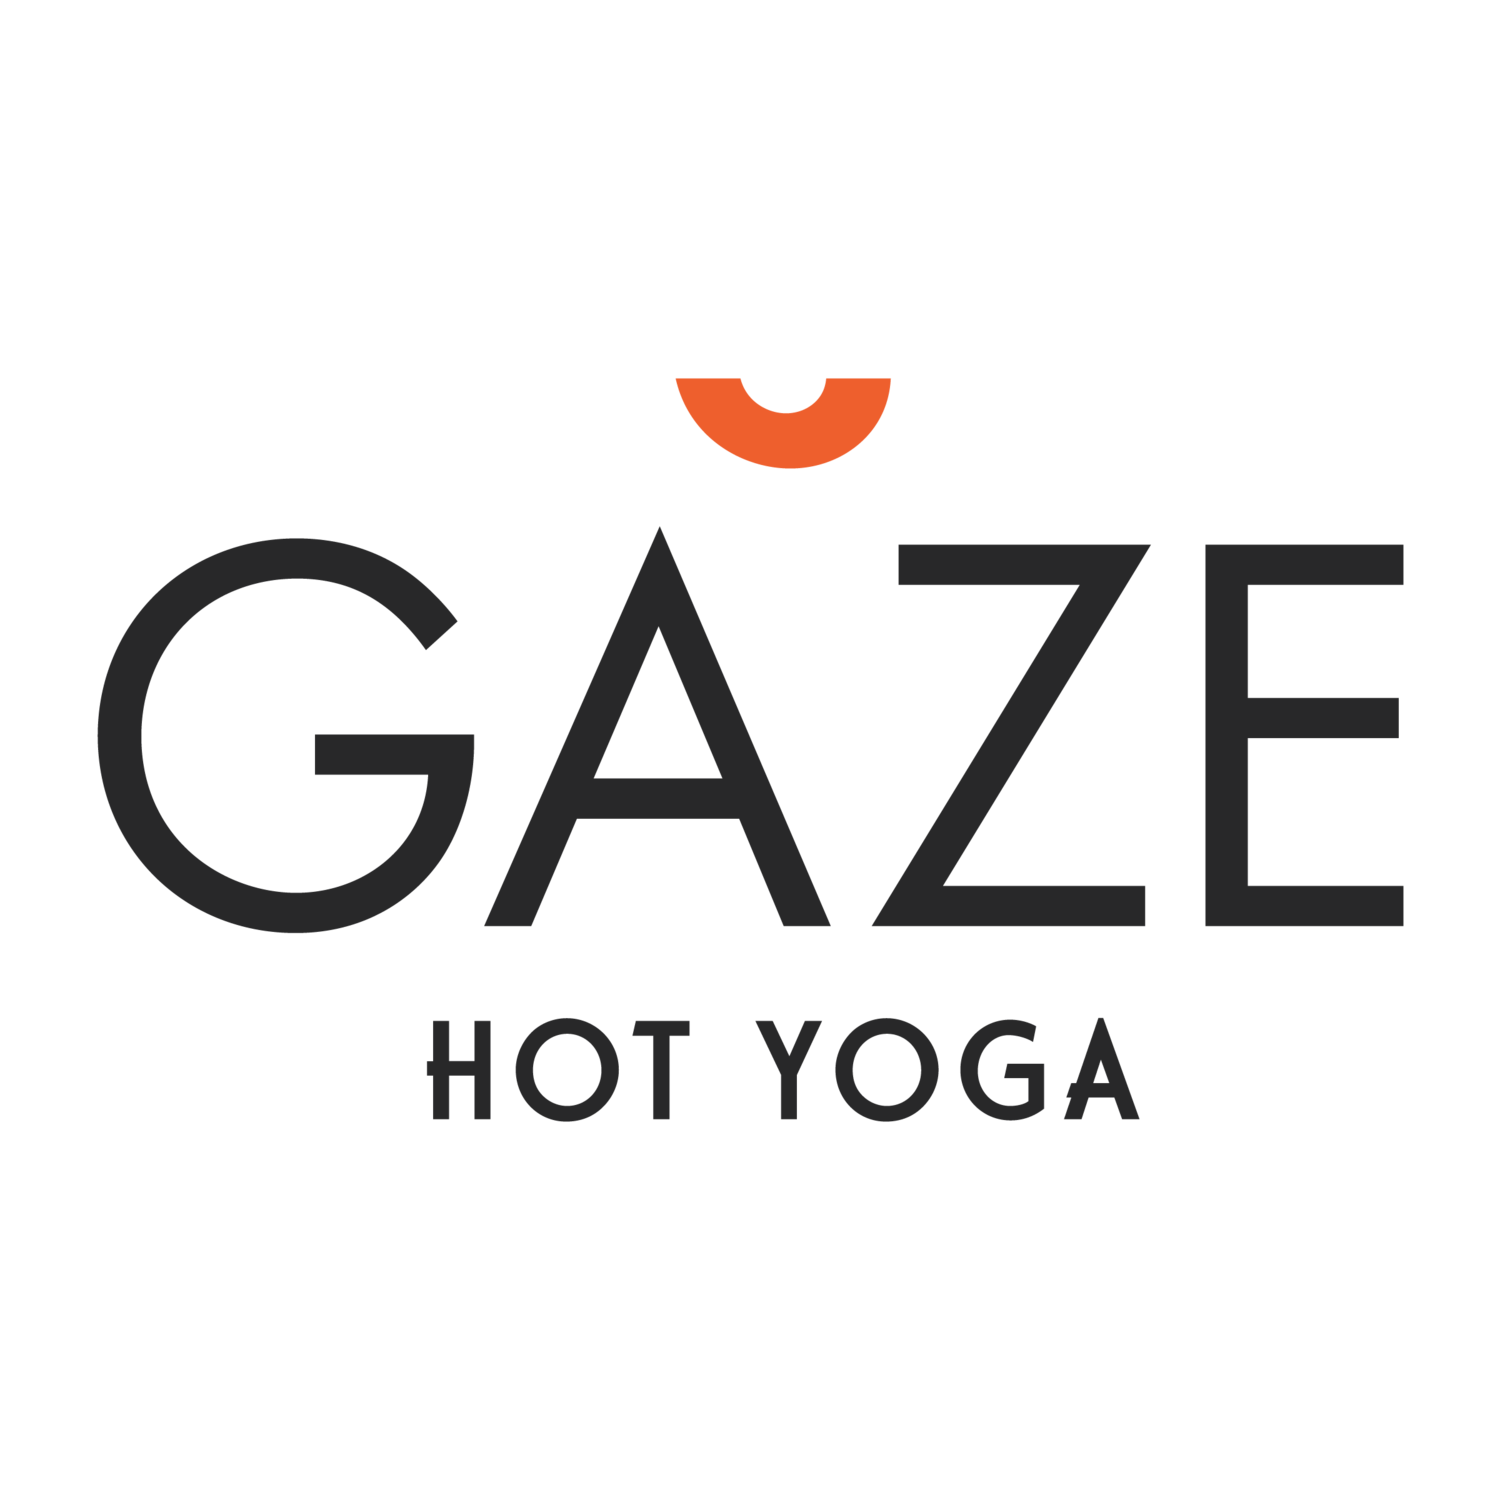 Gaze Hot Yoga